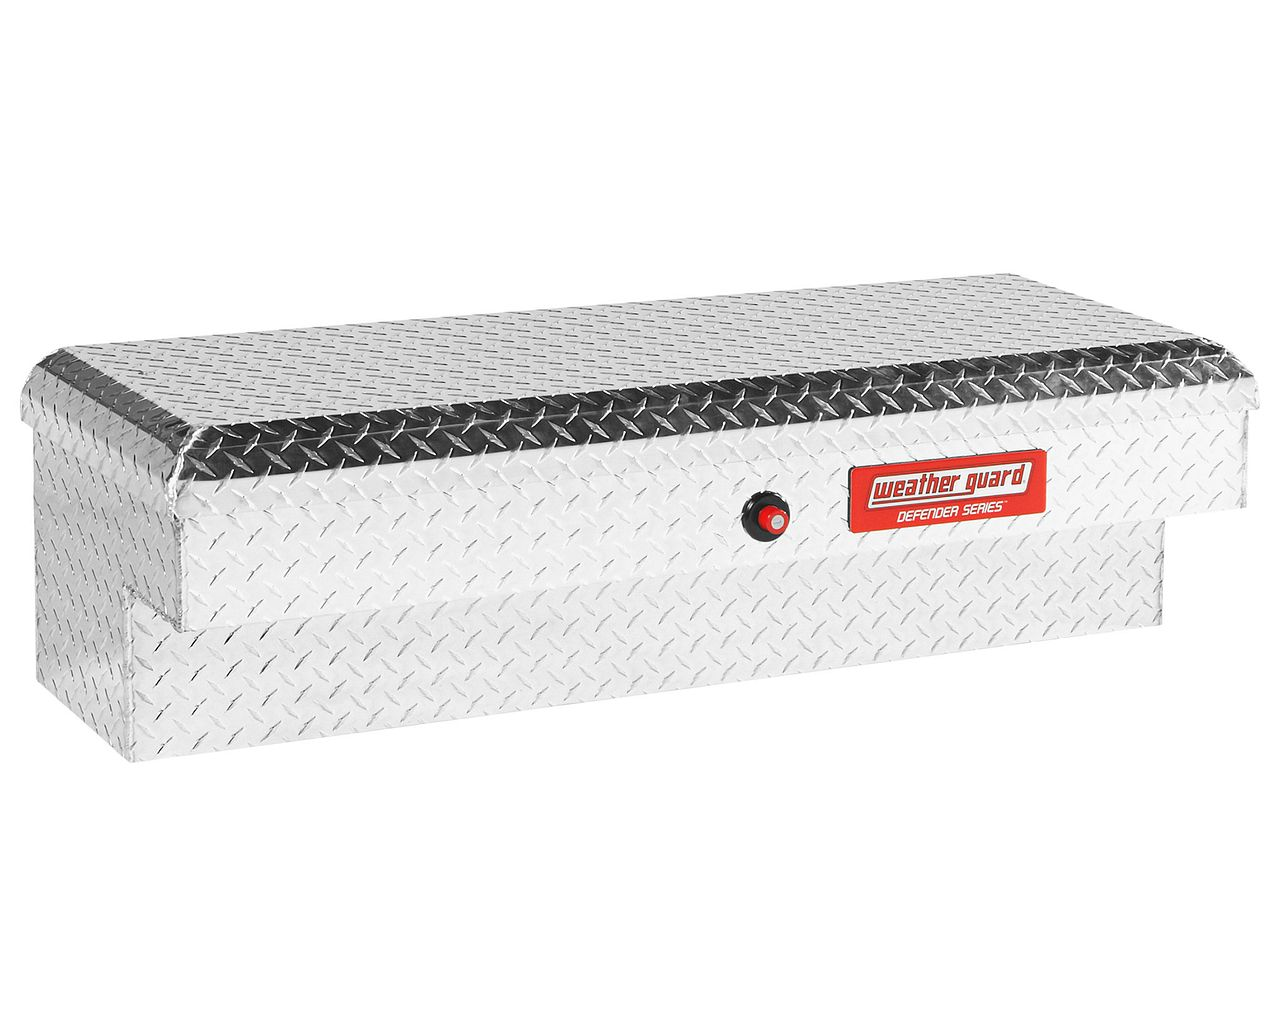 Weather Guard 300304-9-01 46 Inch Lo-Side Box